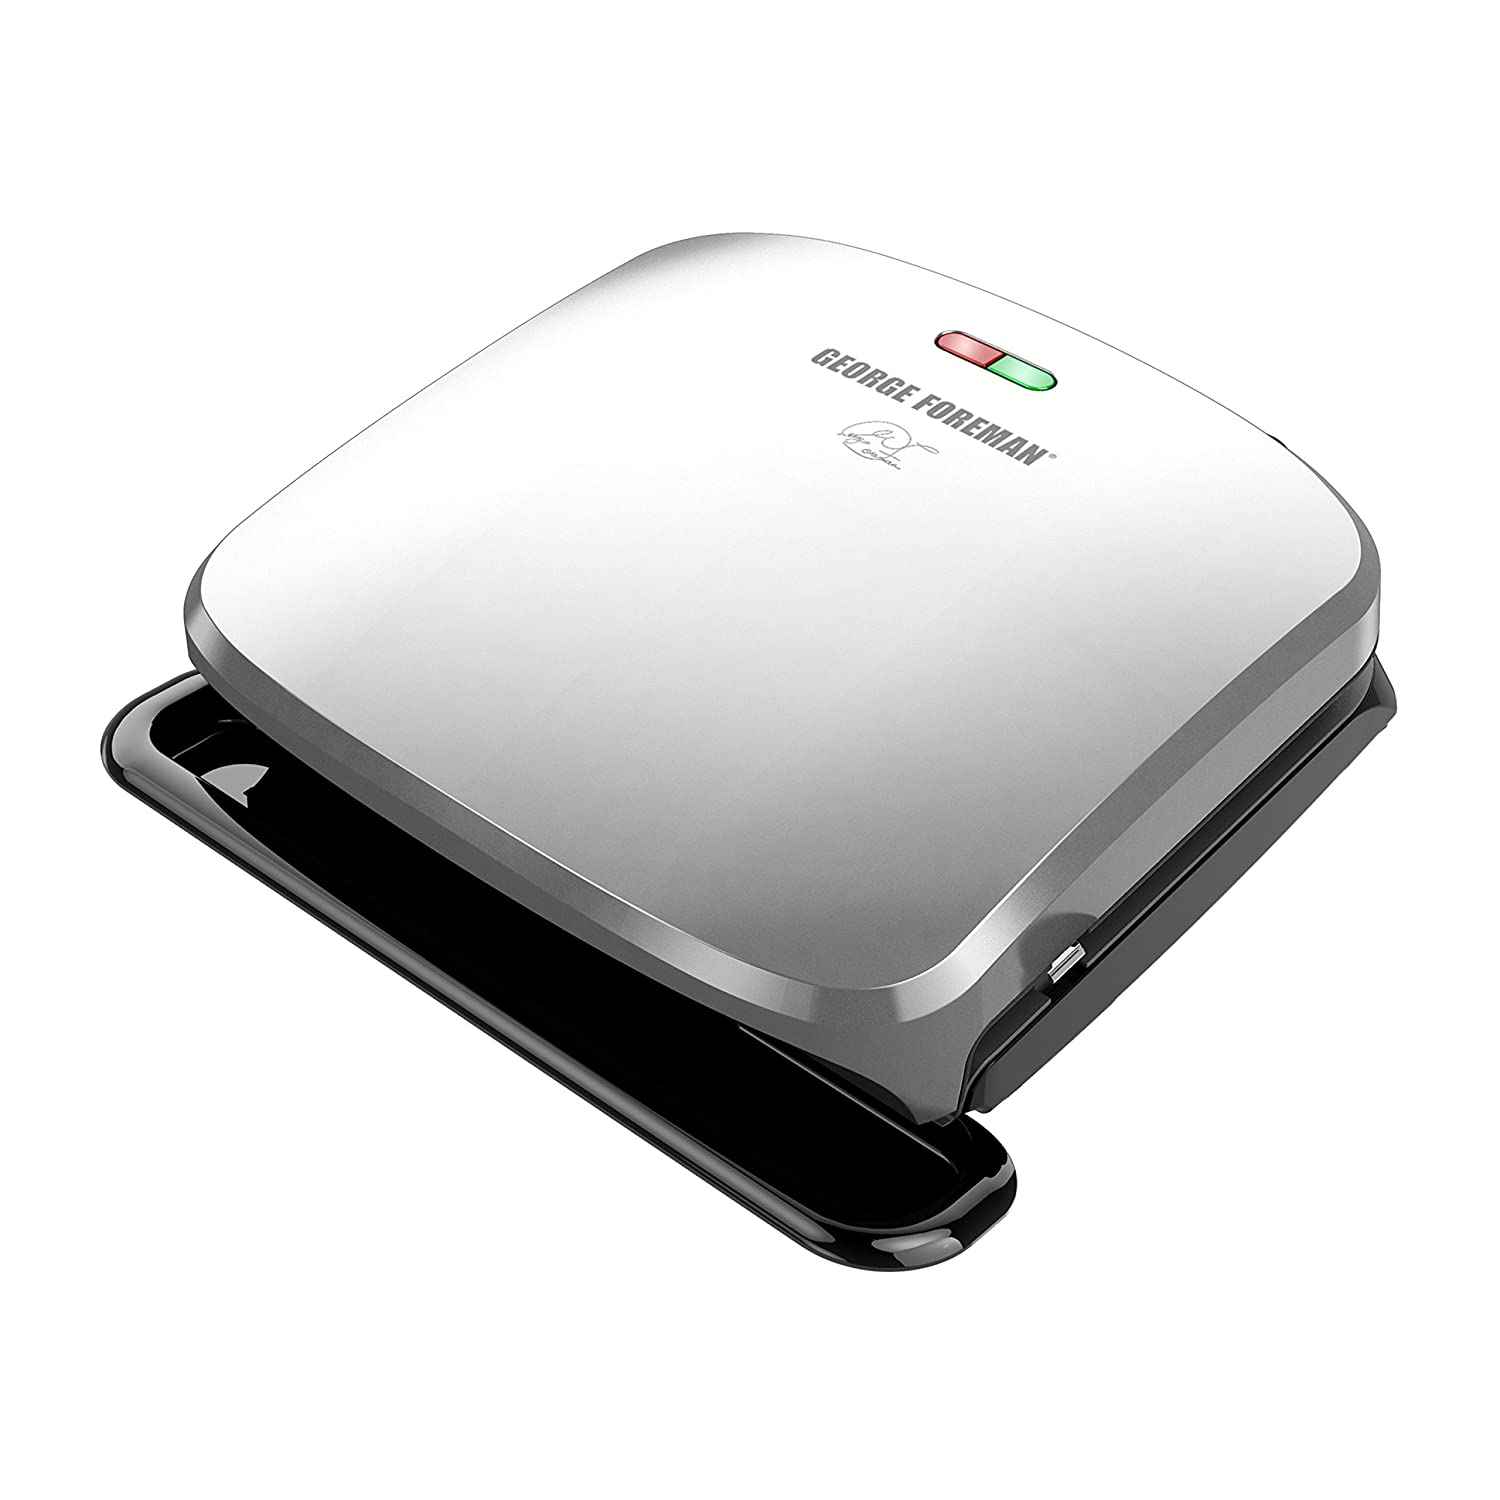 George Foreman 4-Serving Removable Plate Grill and Panini Press, Black, GRP1060B Spectrum Brands